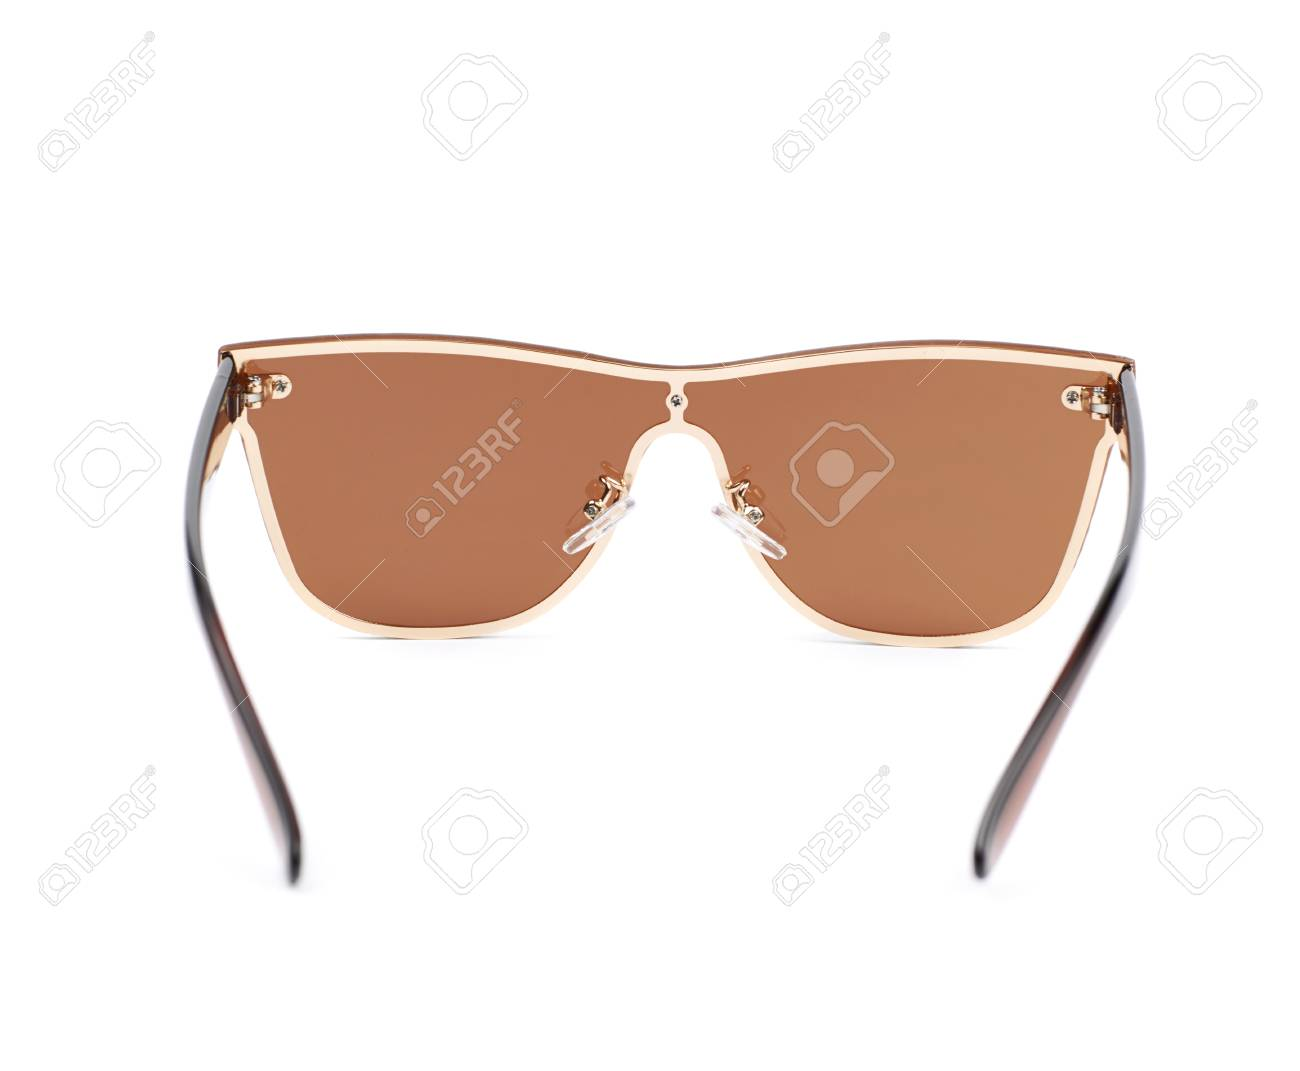 bc5df23b053 Pair of brown shade sunglasses isolated over the white background Stock  Photo - 61261408